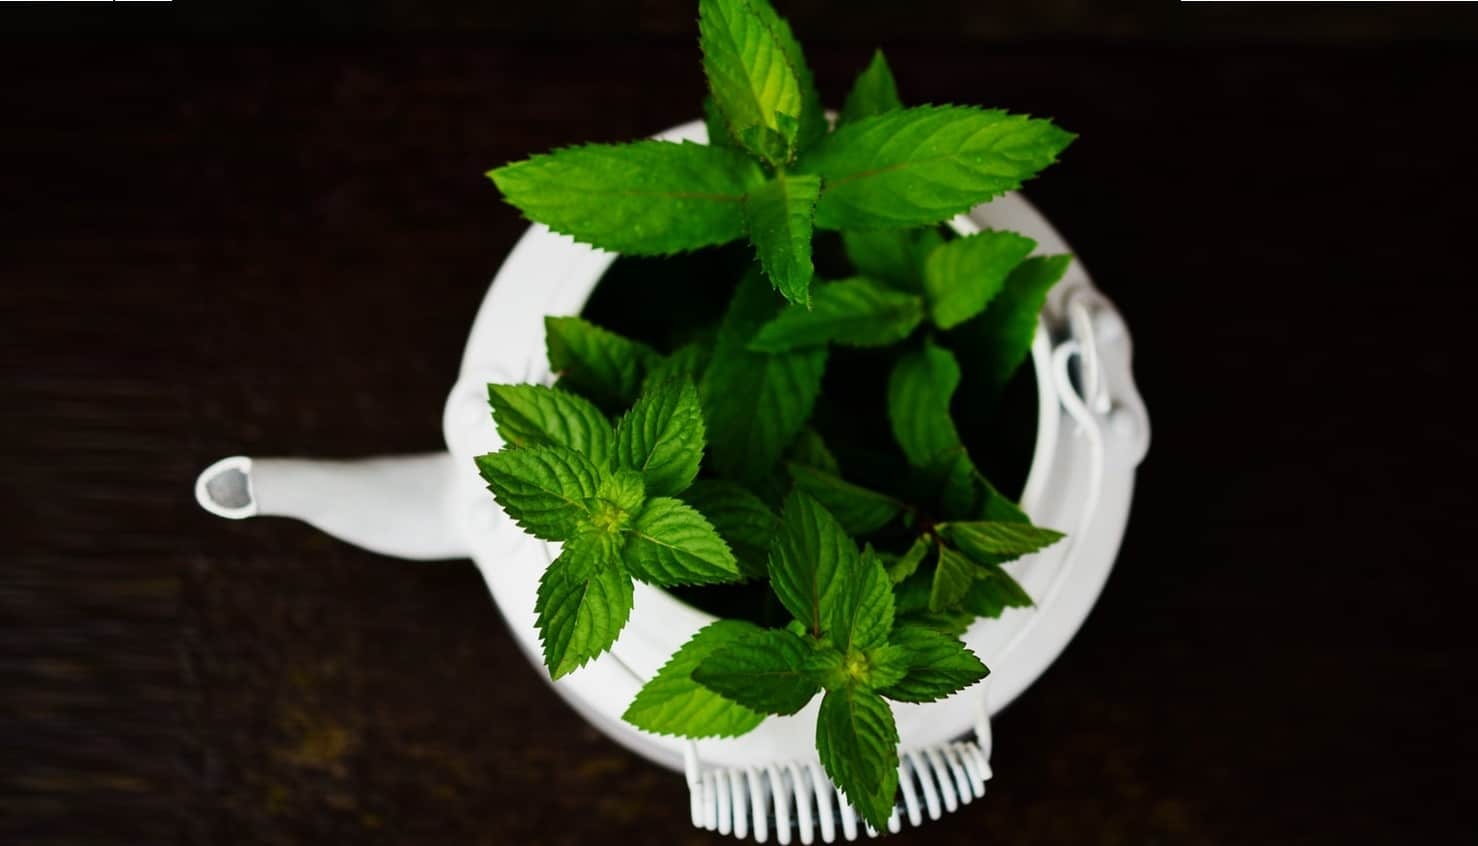 seven-stress-relief-plants-1-peppermint